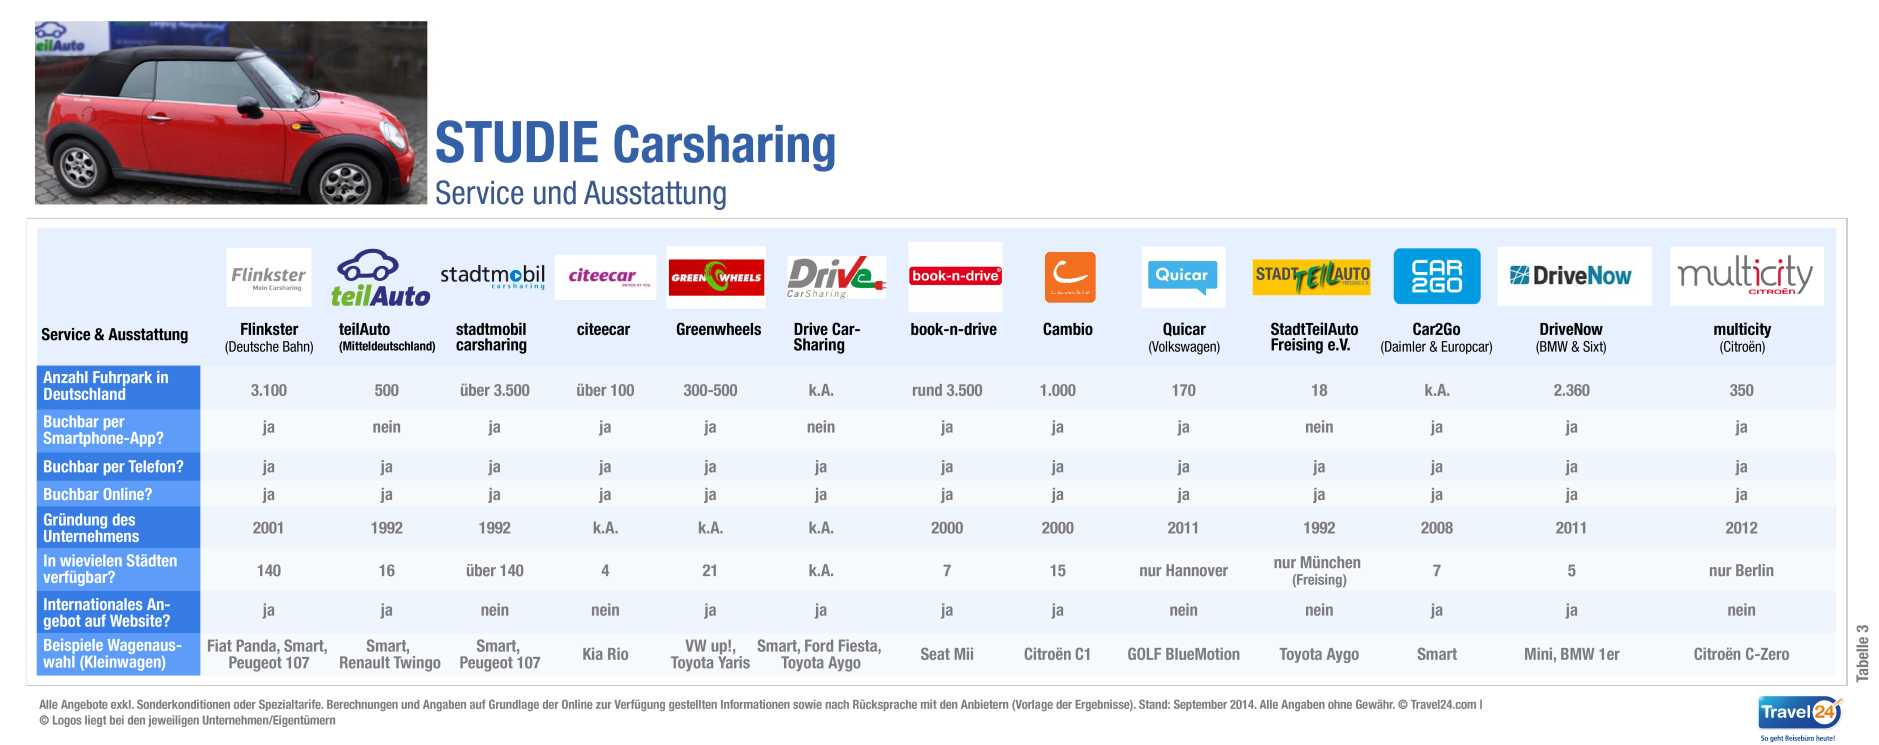 trend Carsharing_Studie_Travel24_com_Tabelle-03_Service_Ausstattung